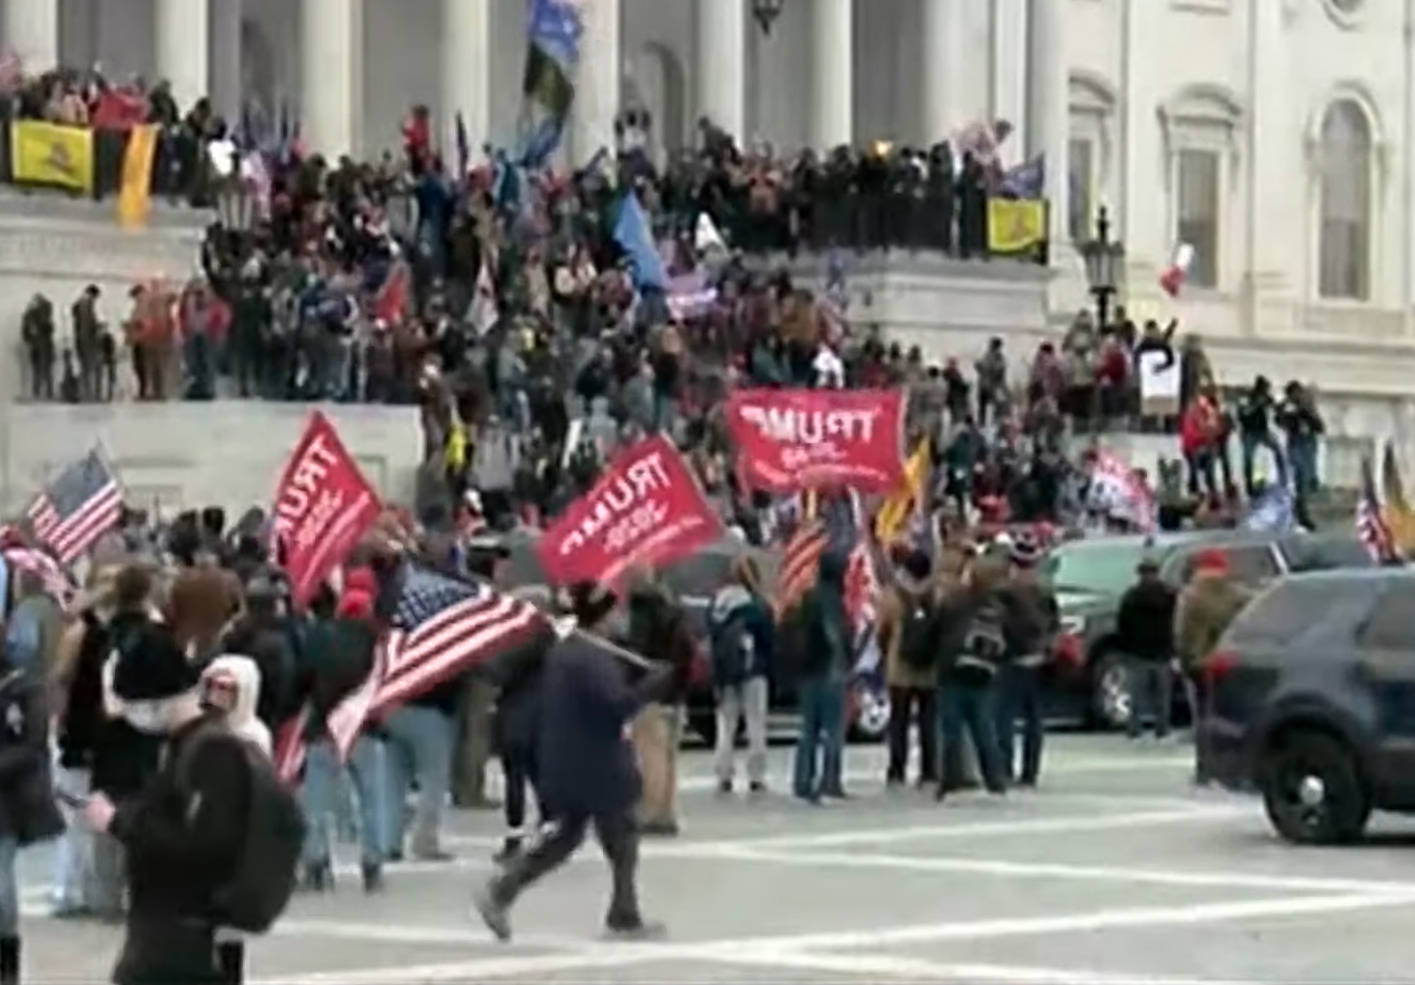 Screenshot from a YouTube stream of the Jan. 6, 2021, protest at the U.S. Capitol Building in Washington, D.C.